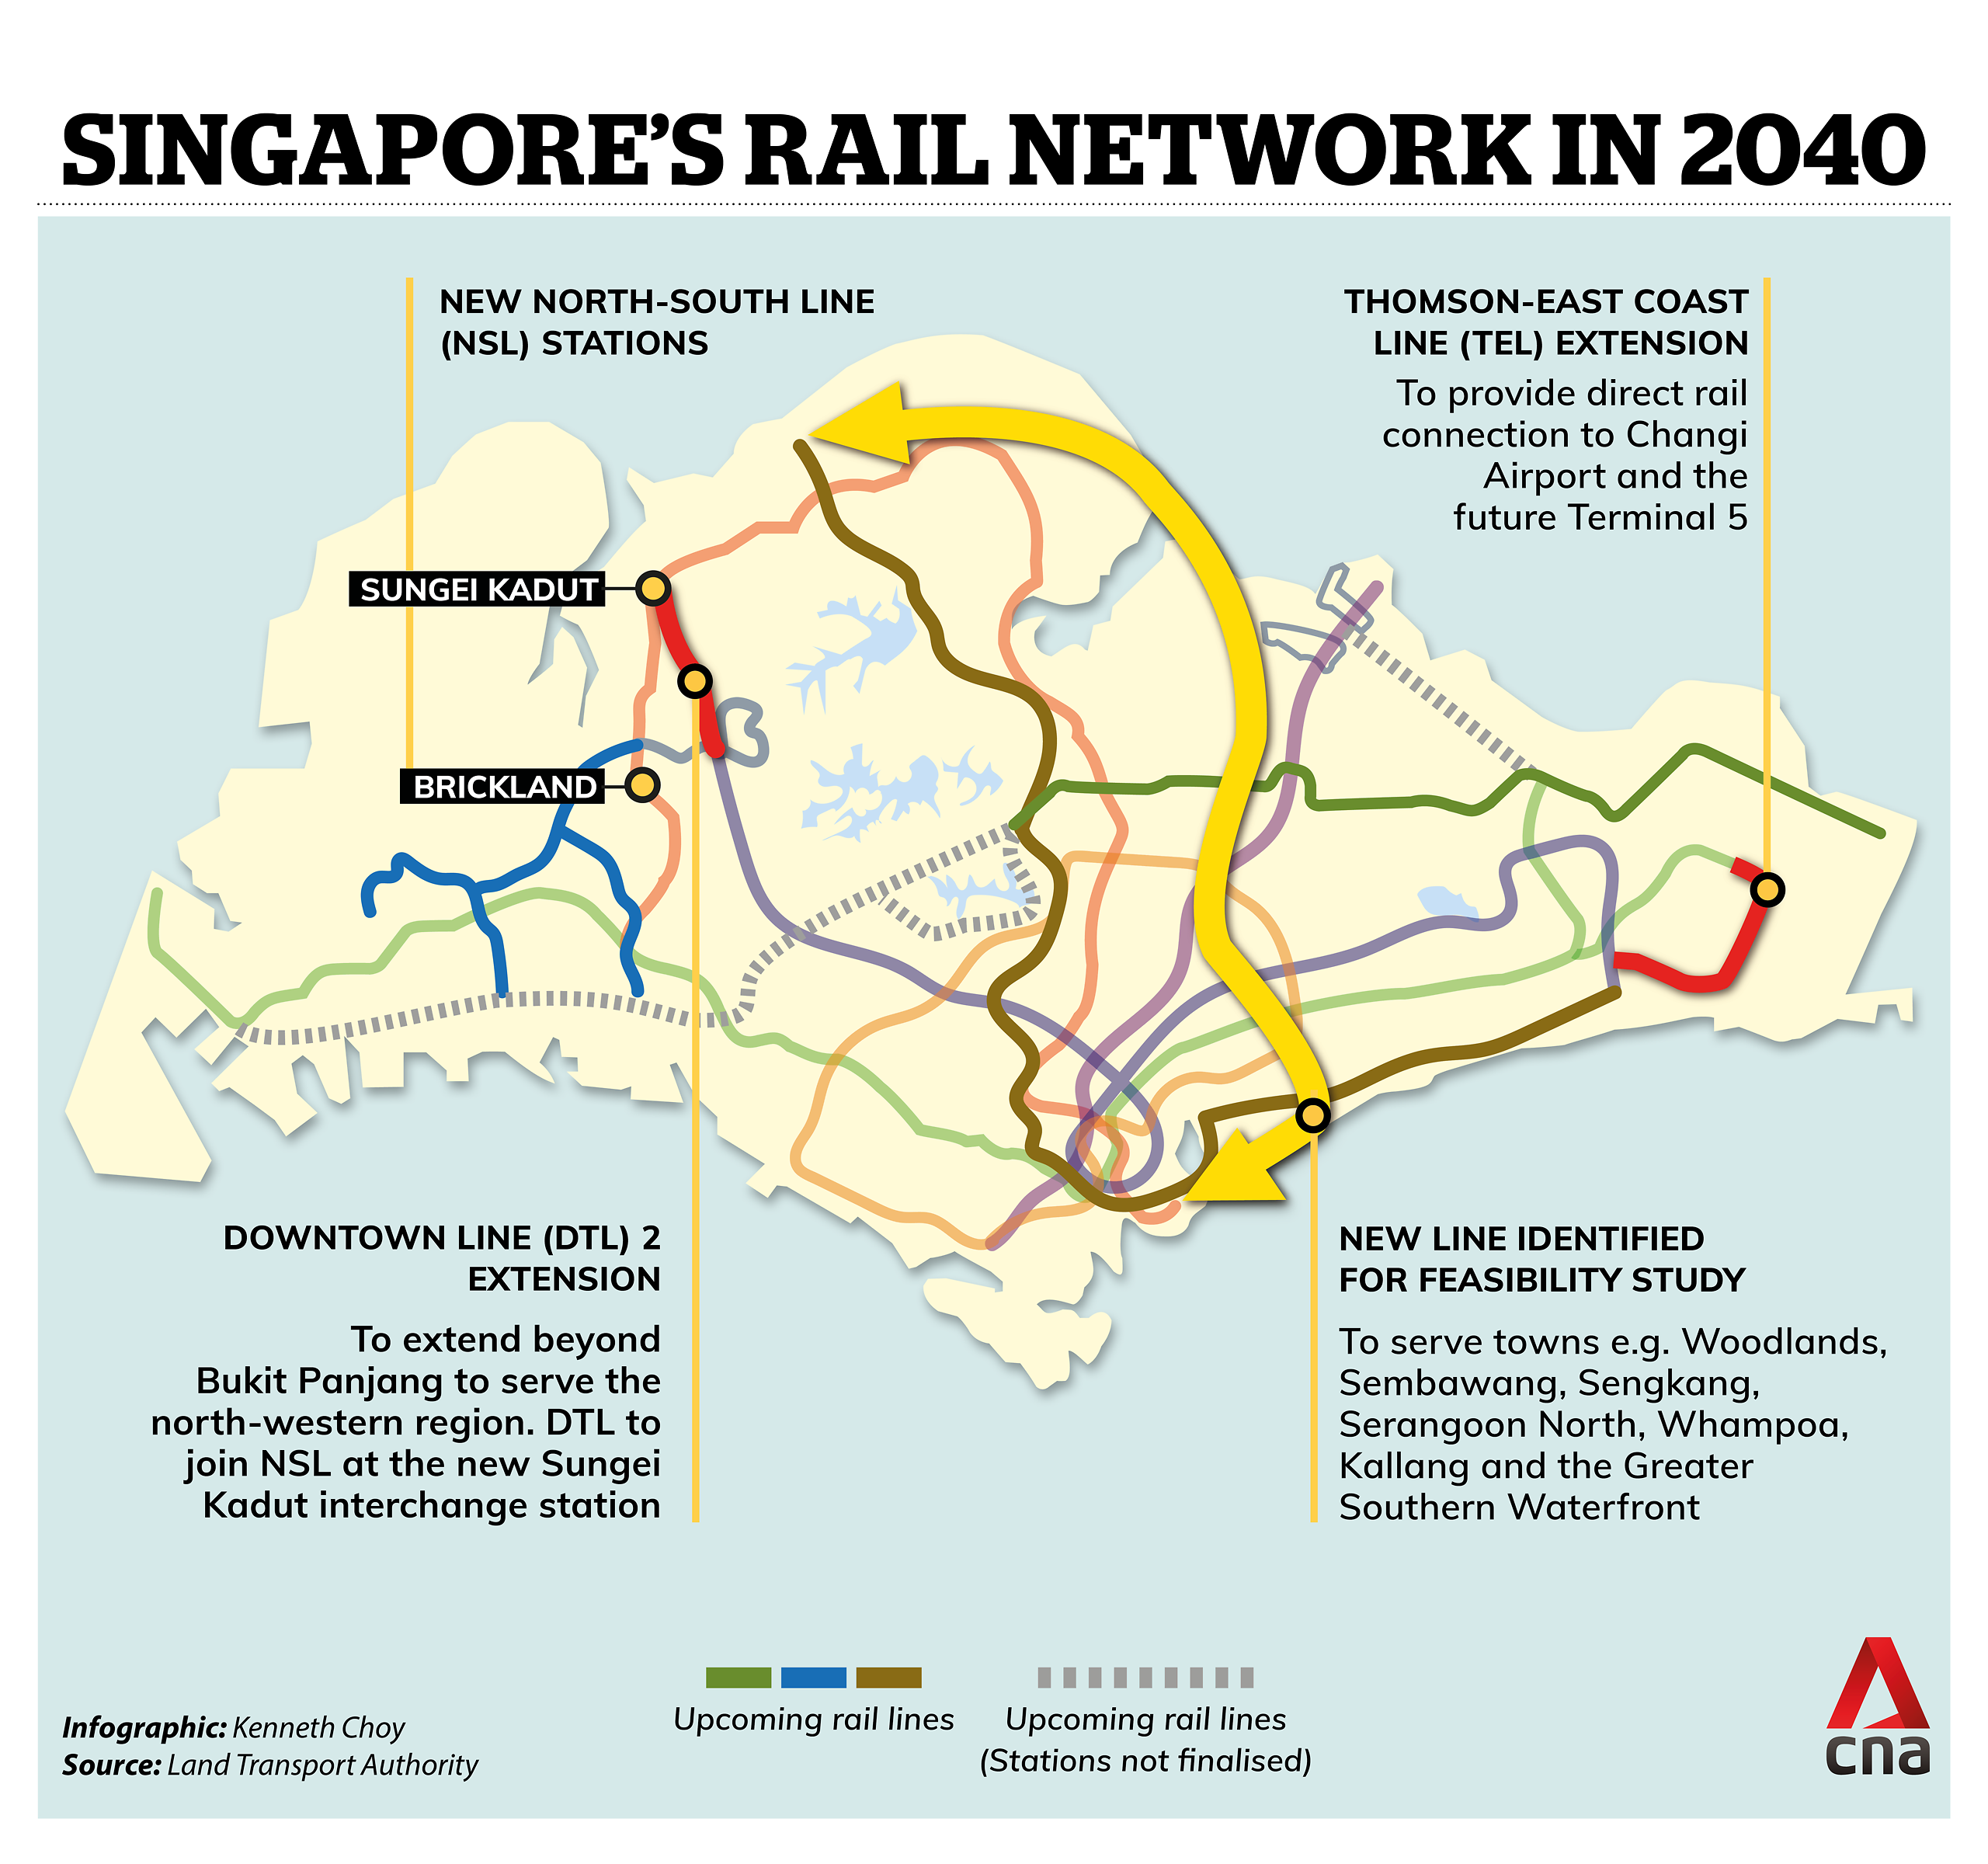 graphic-showing-singapore-s-rail-network-in-2040---lta-master-plan-2040